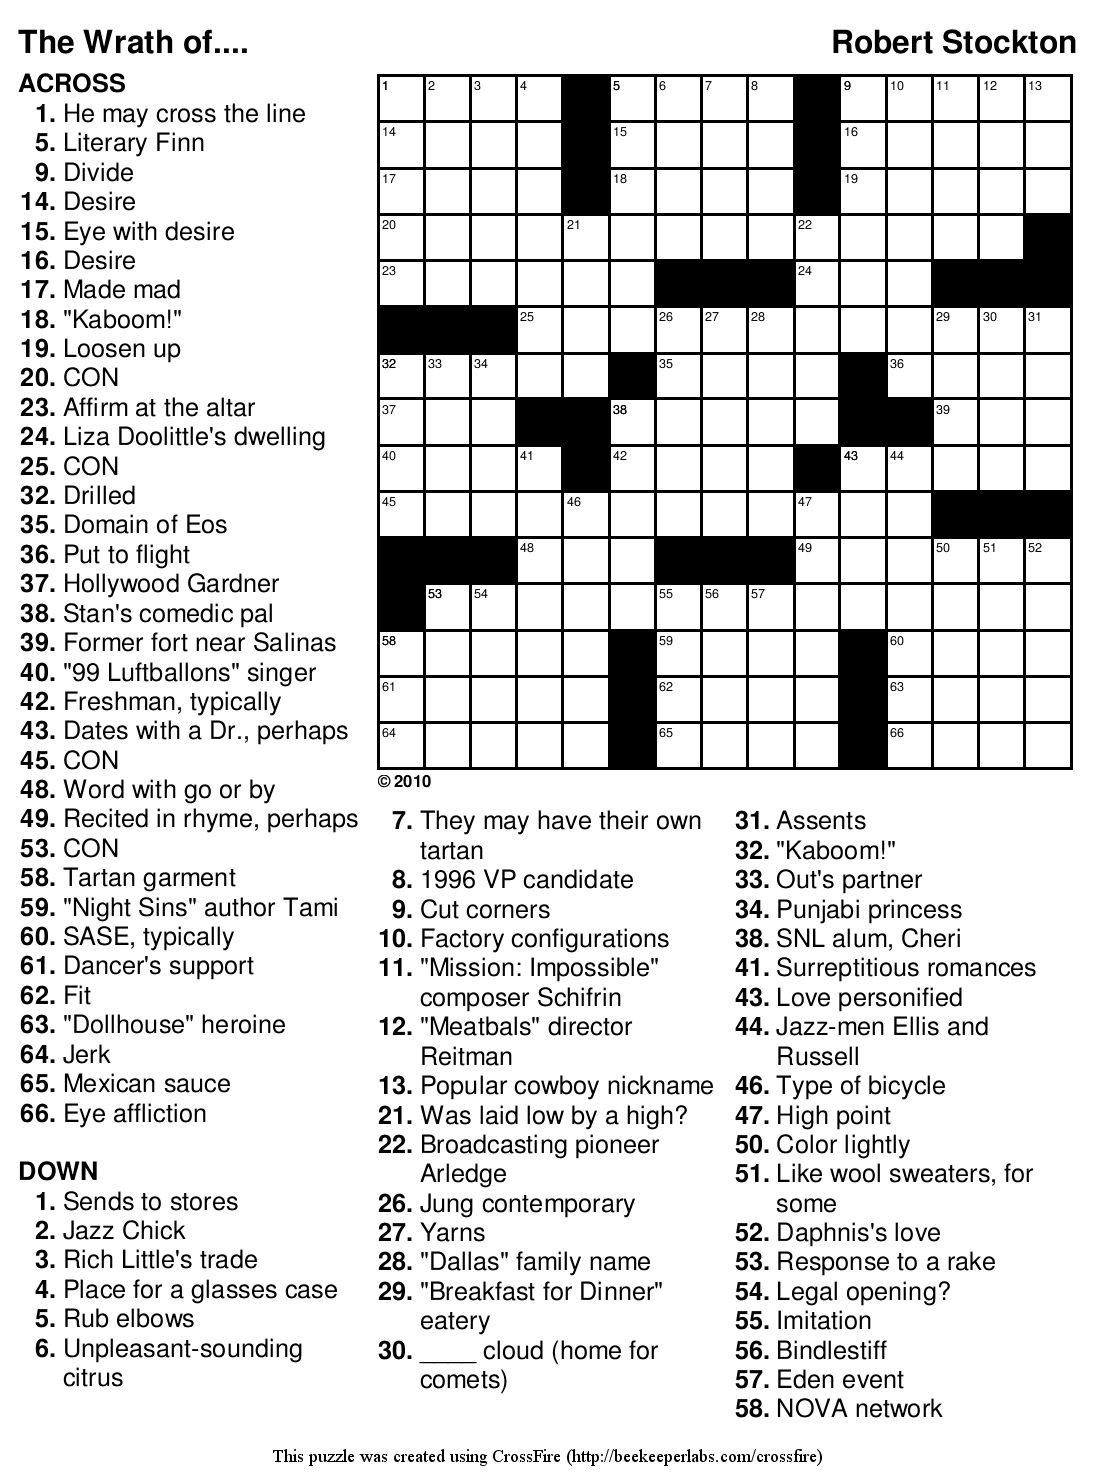 Marvelous Crossword Puzzles Easy Printable Free Org | Chas's Board - Printable Crossword Puzzles Medium Difficulty